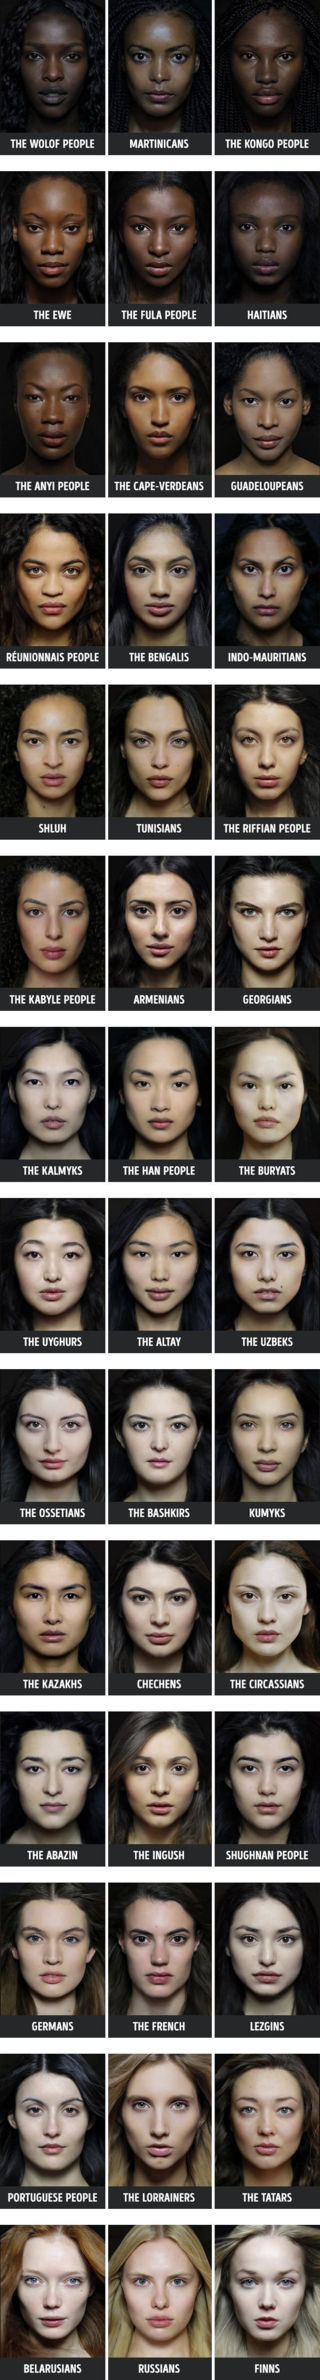 Facial color palettes around the world